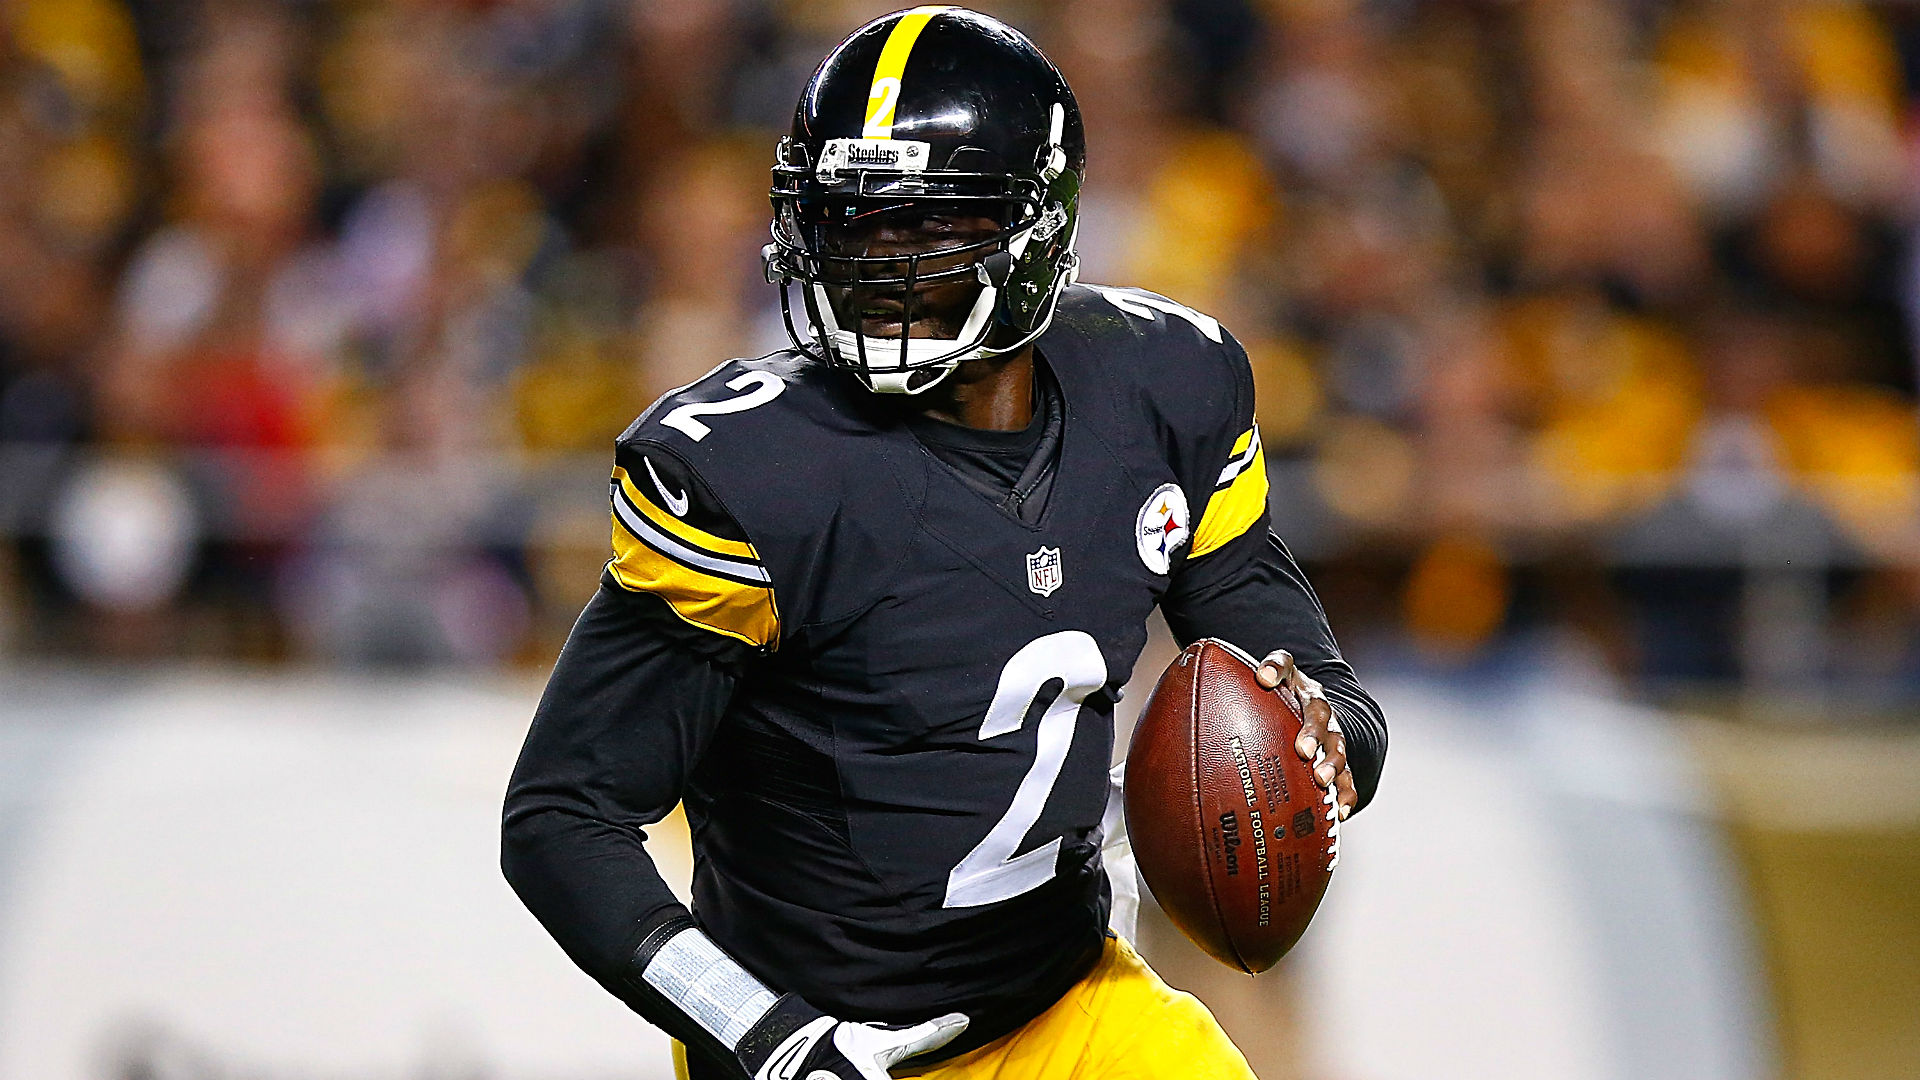 Mike vick article